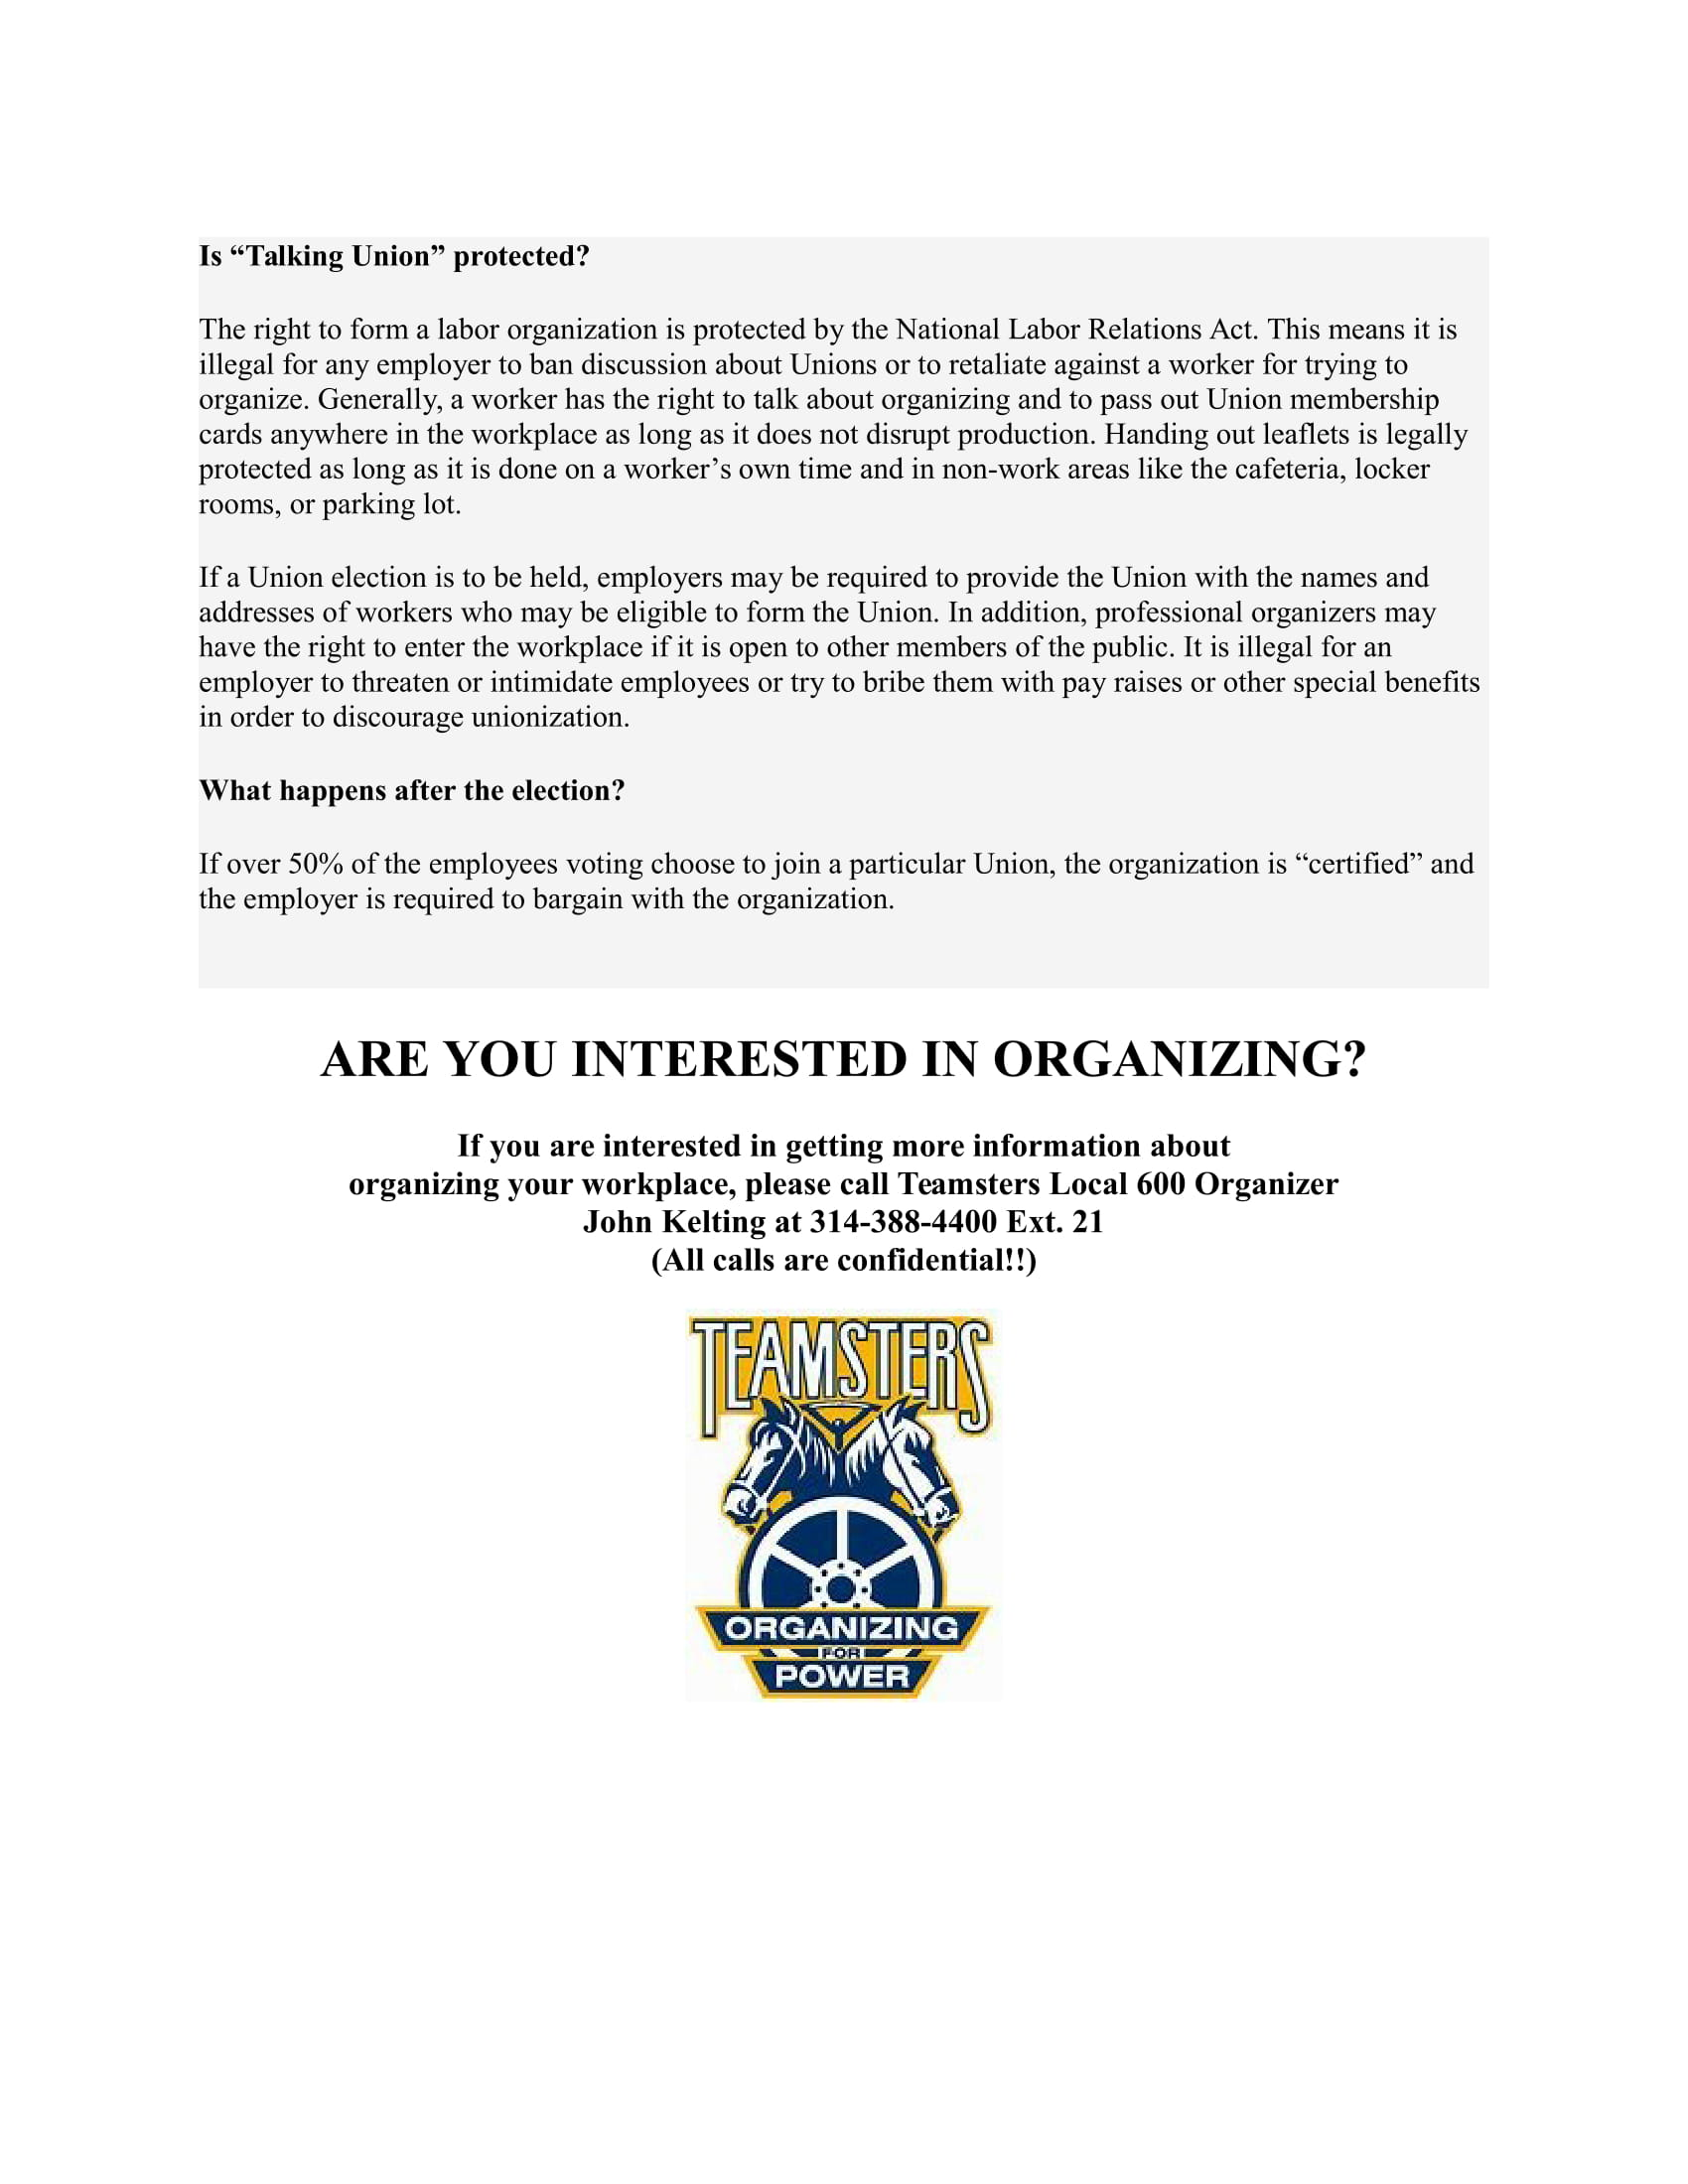 Teamsters Local 600 | Organizing